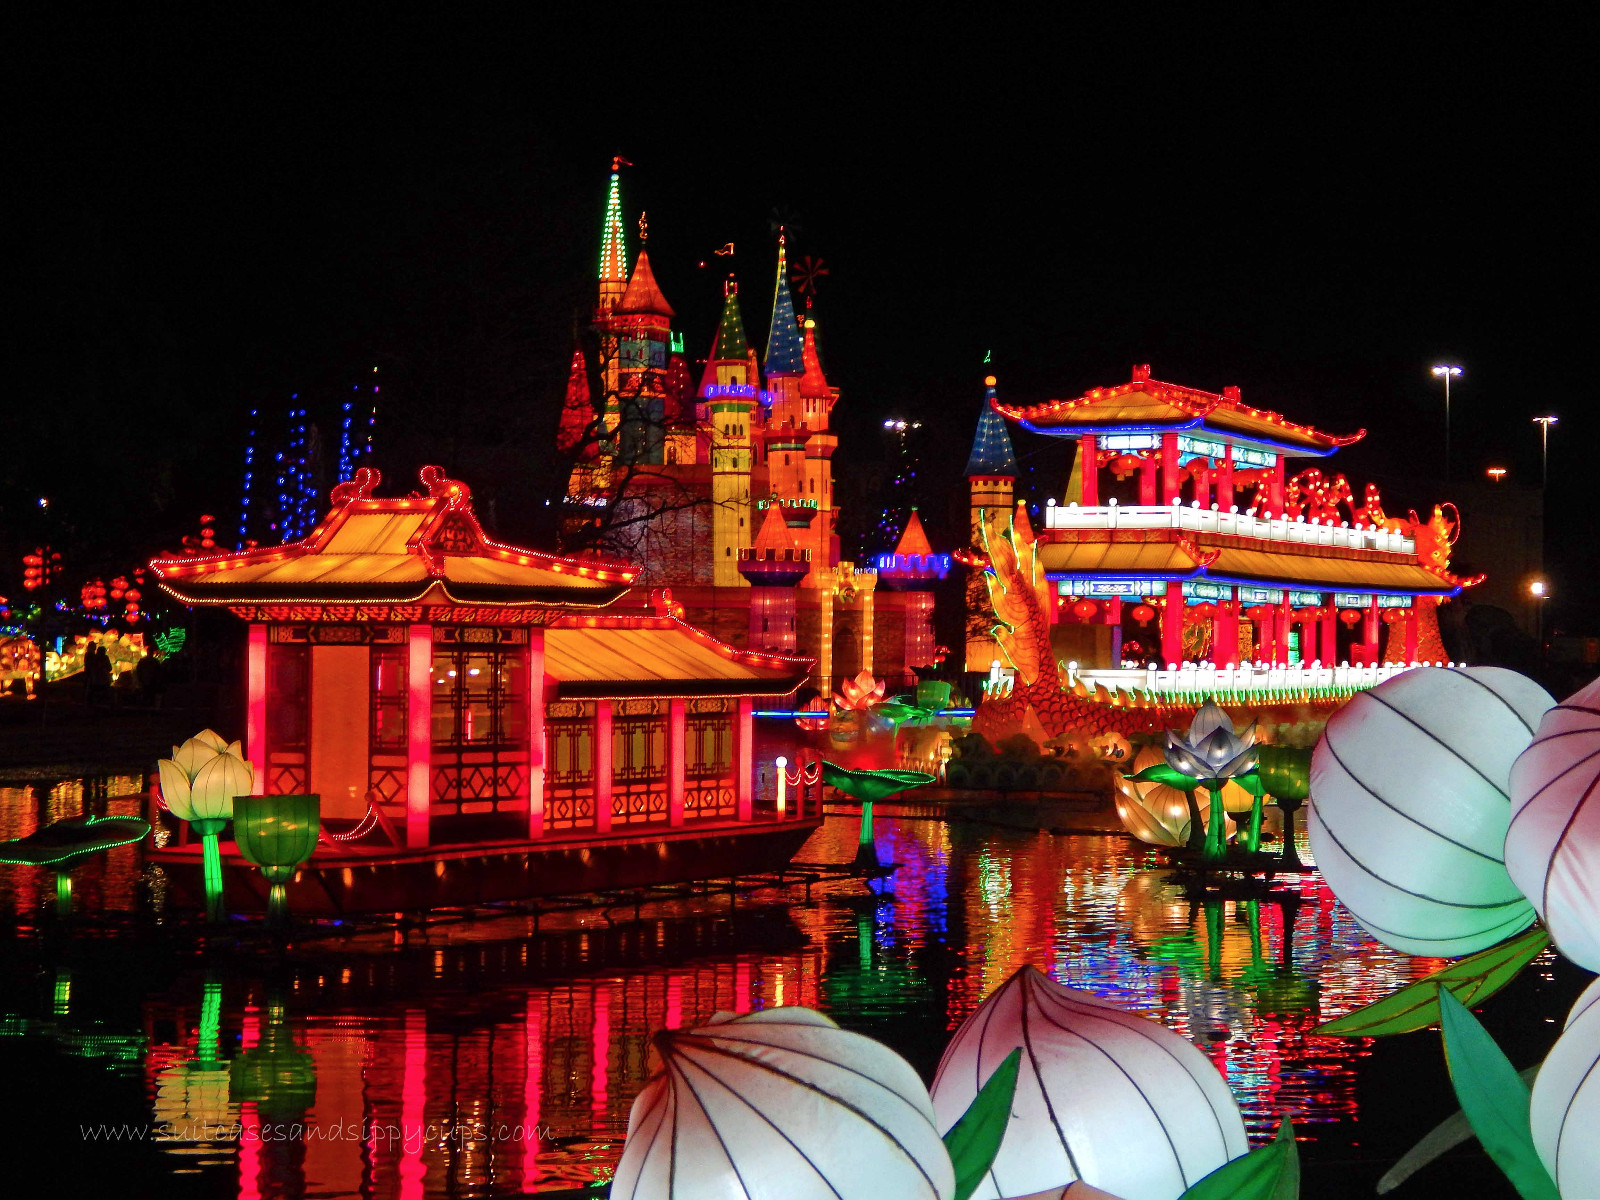 Shenzhen, City of Theme Parks